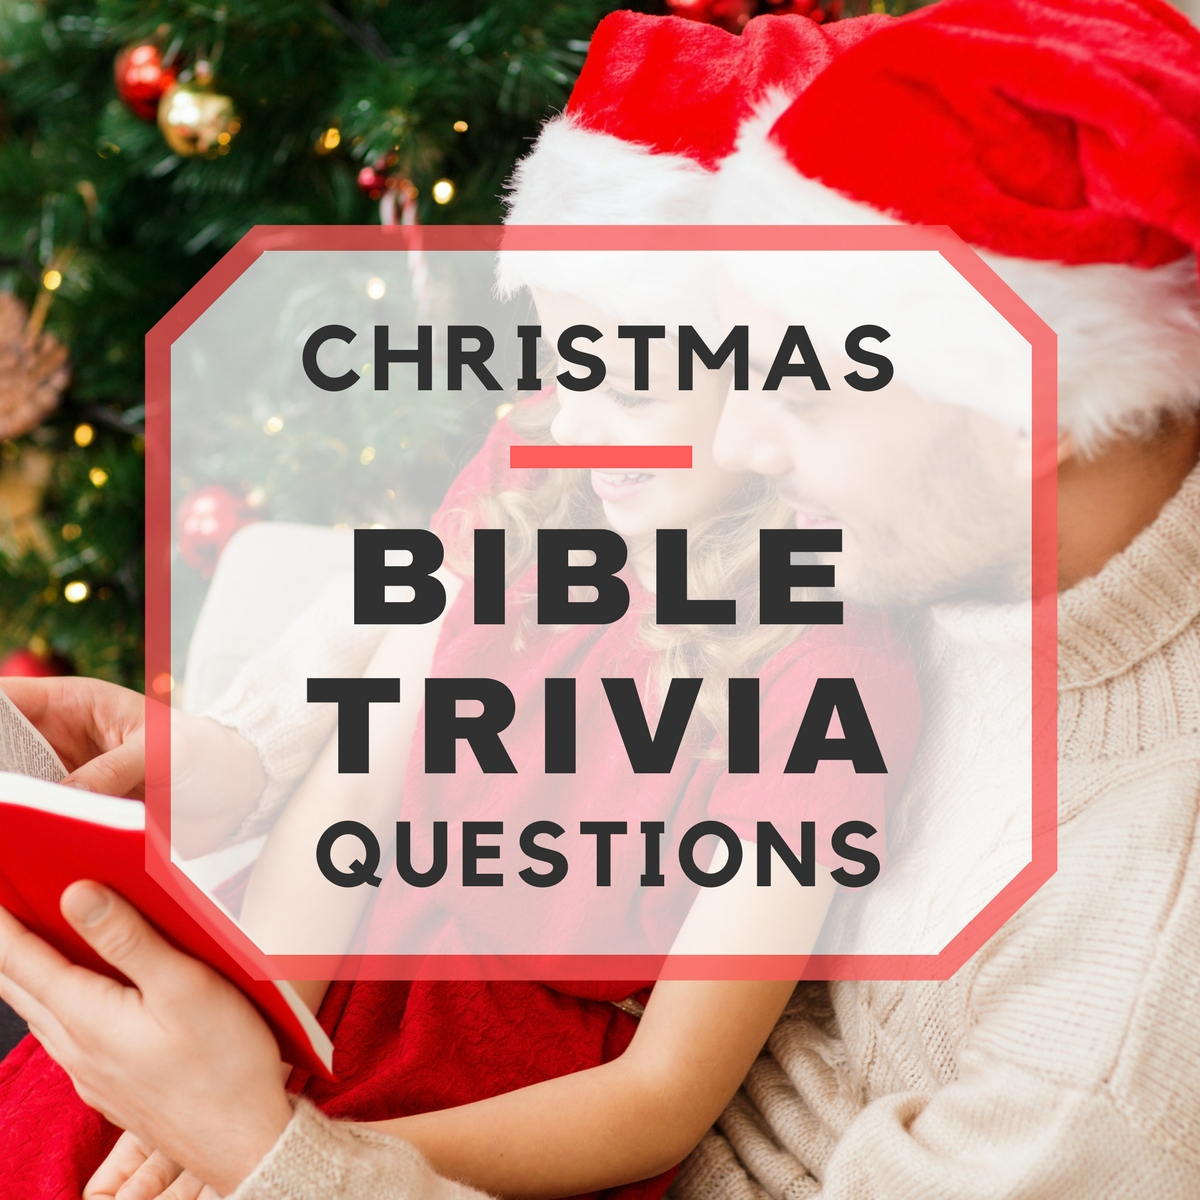 20 Fun Christmas Bible Trivia Questions - Free Printable Bible Trivia Questions And Answers